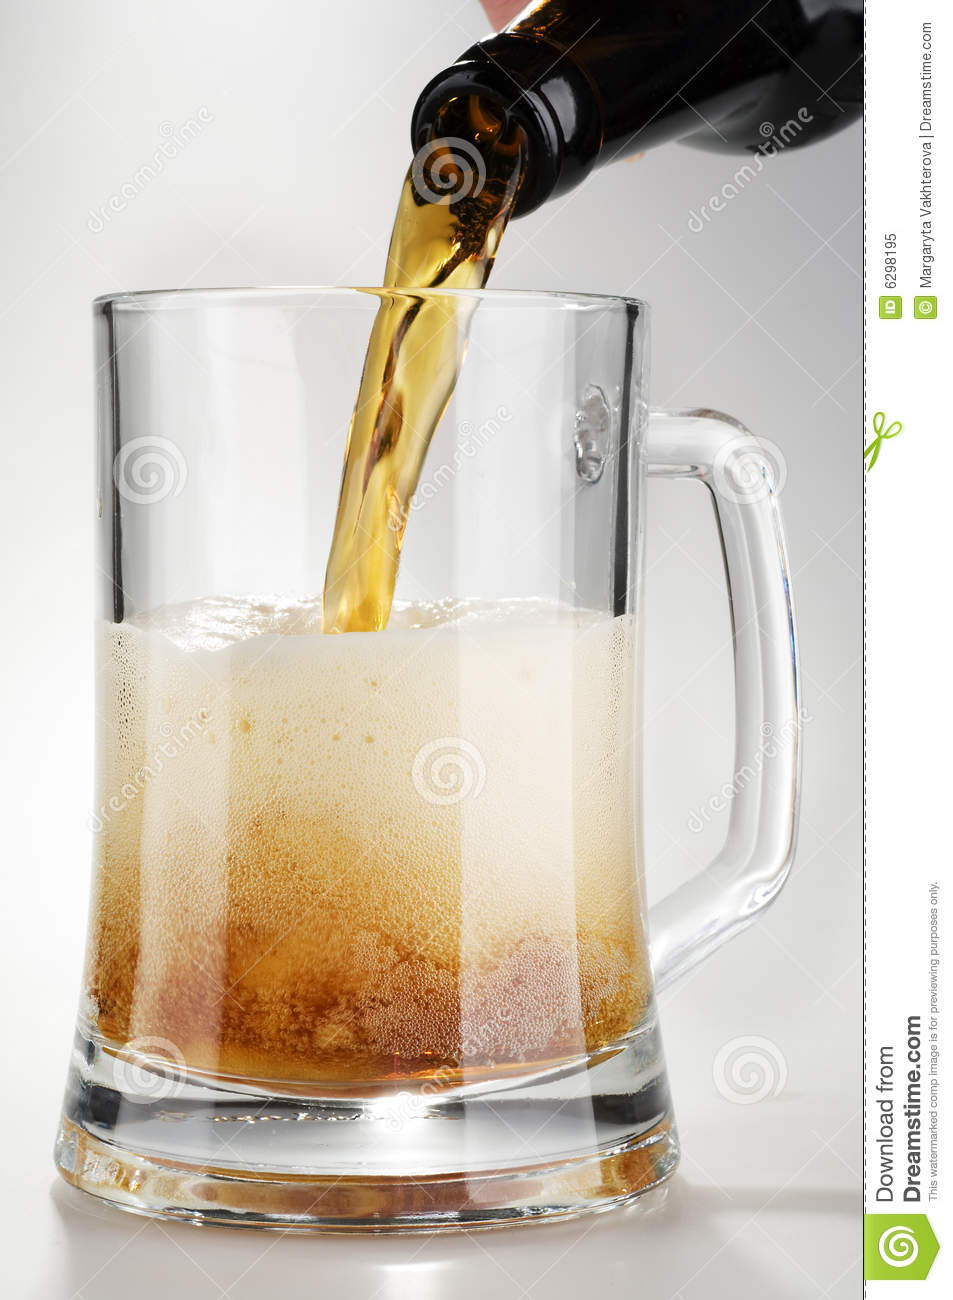 Alcohol dark beer with froth